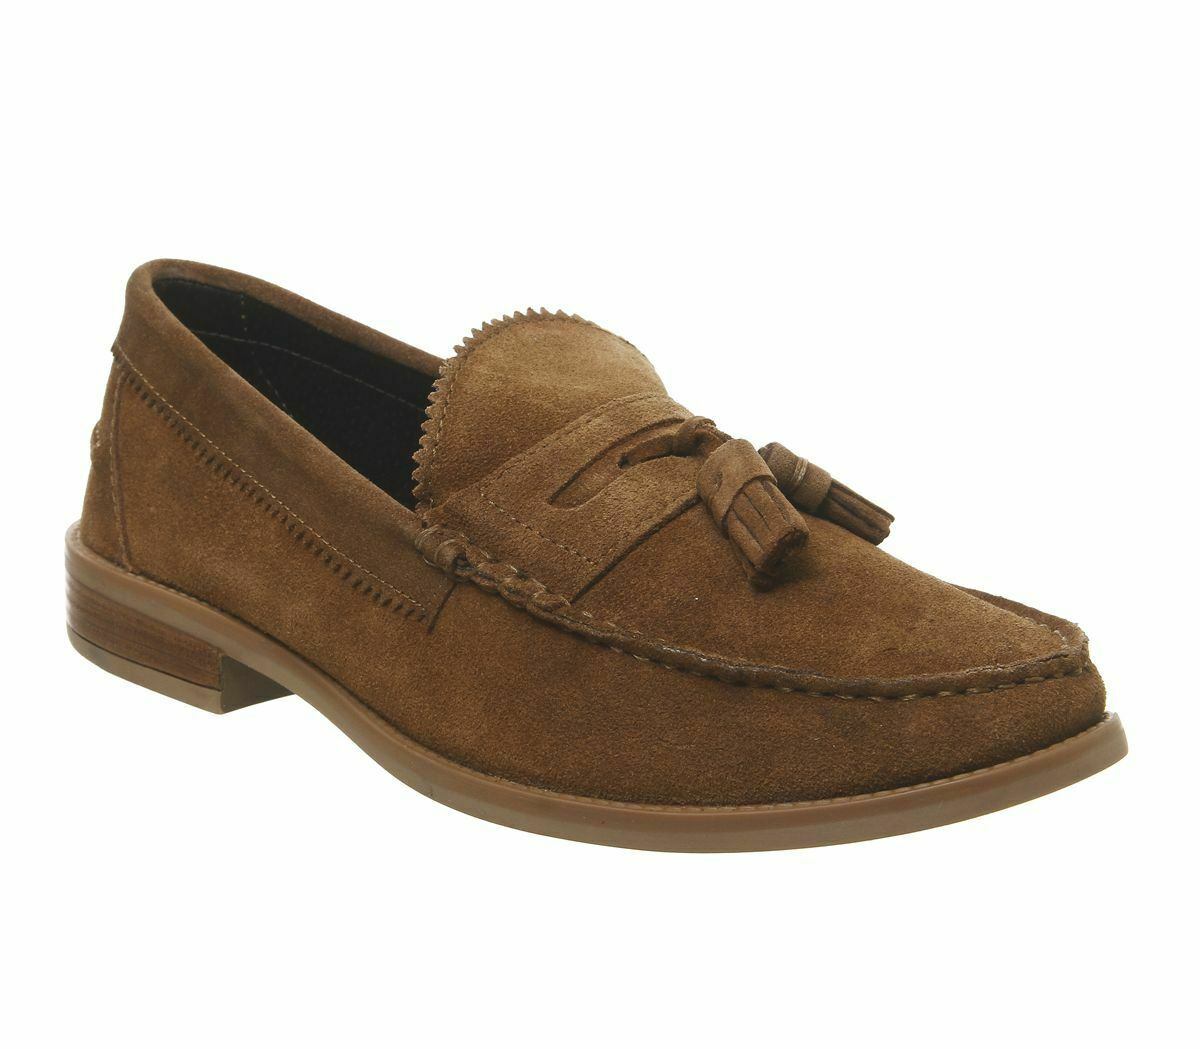 Mens Office Liho Tassel Loafers Rust Suede Formal zapatos